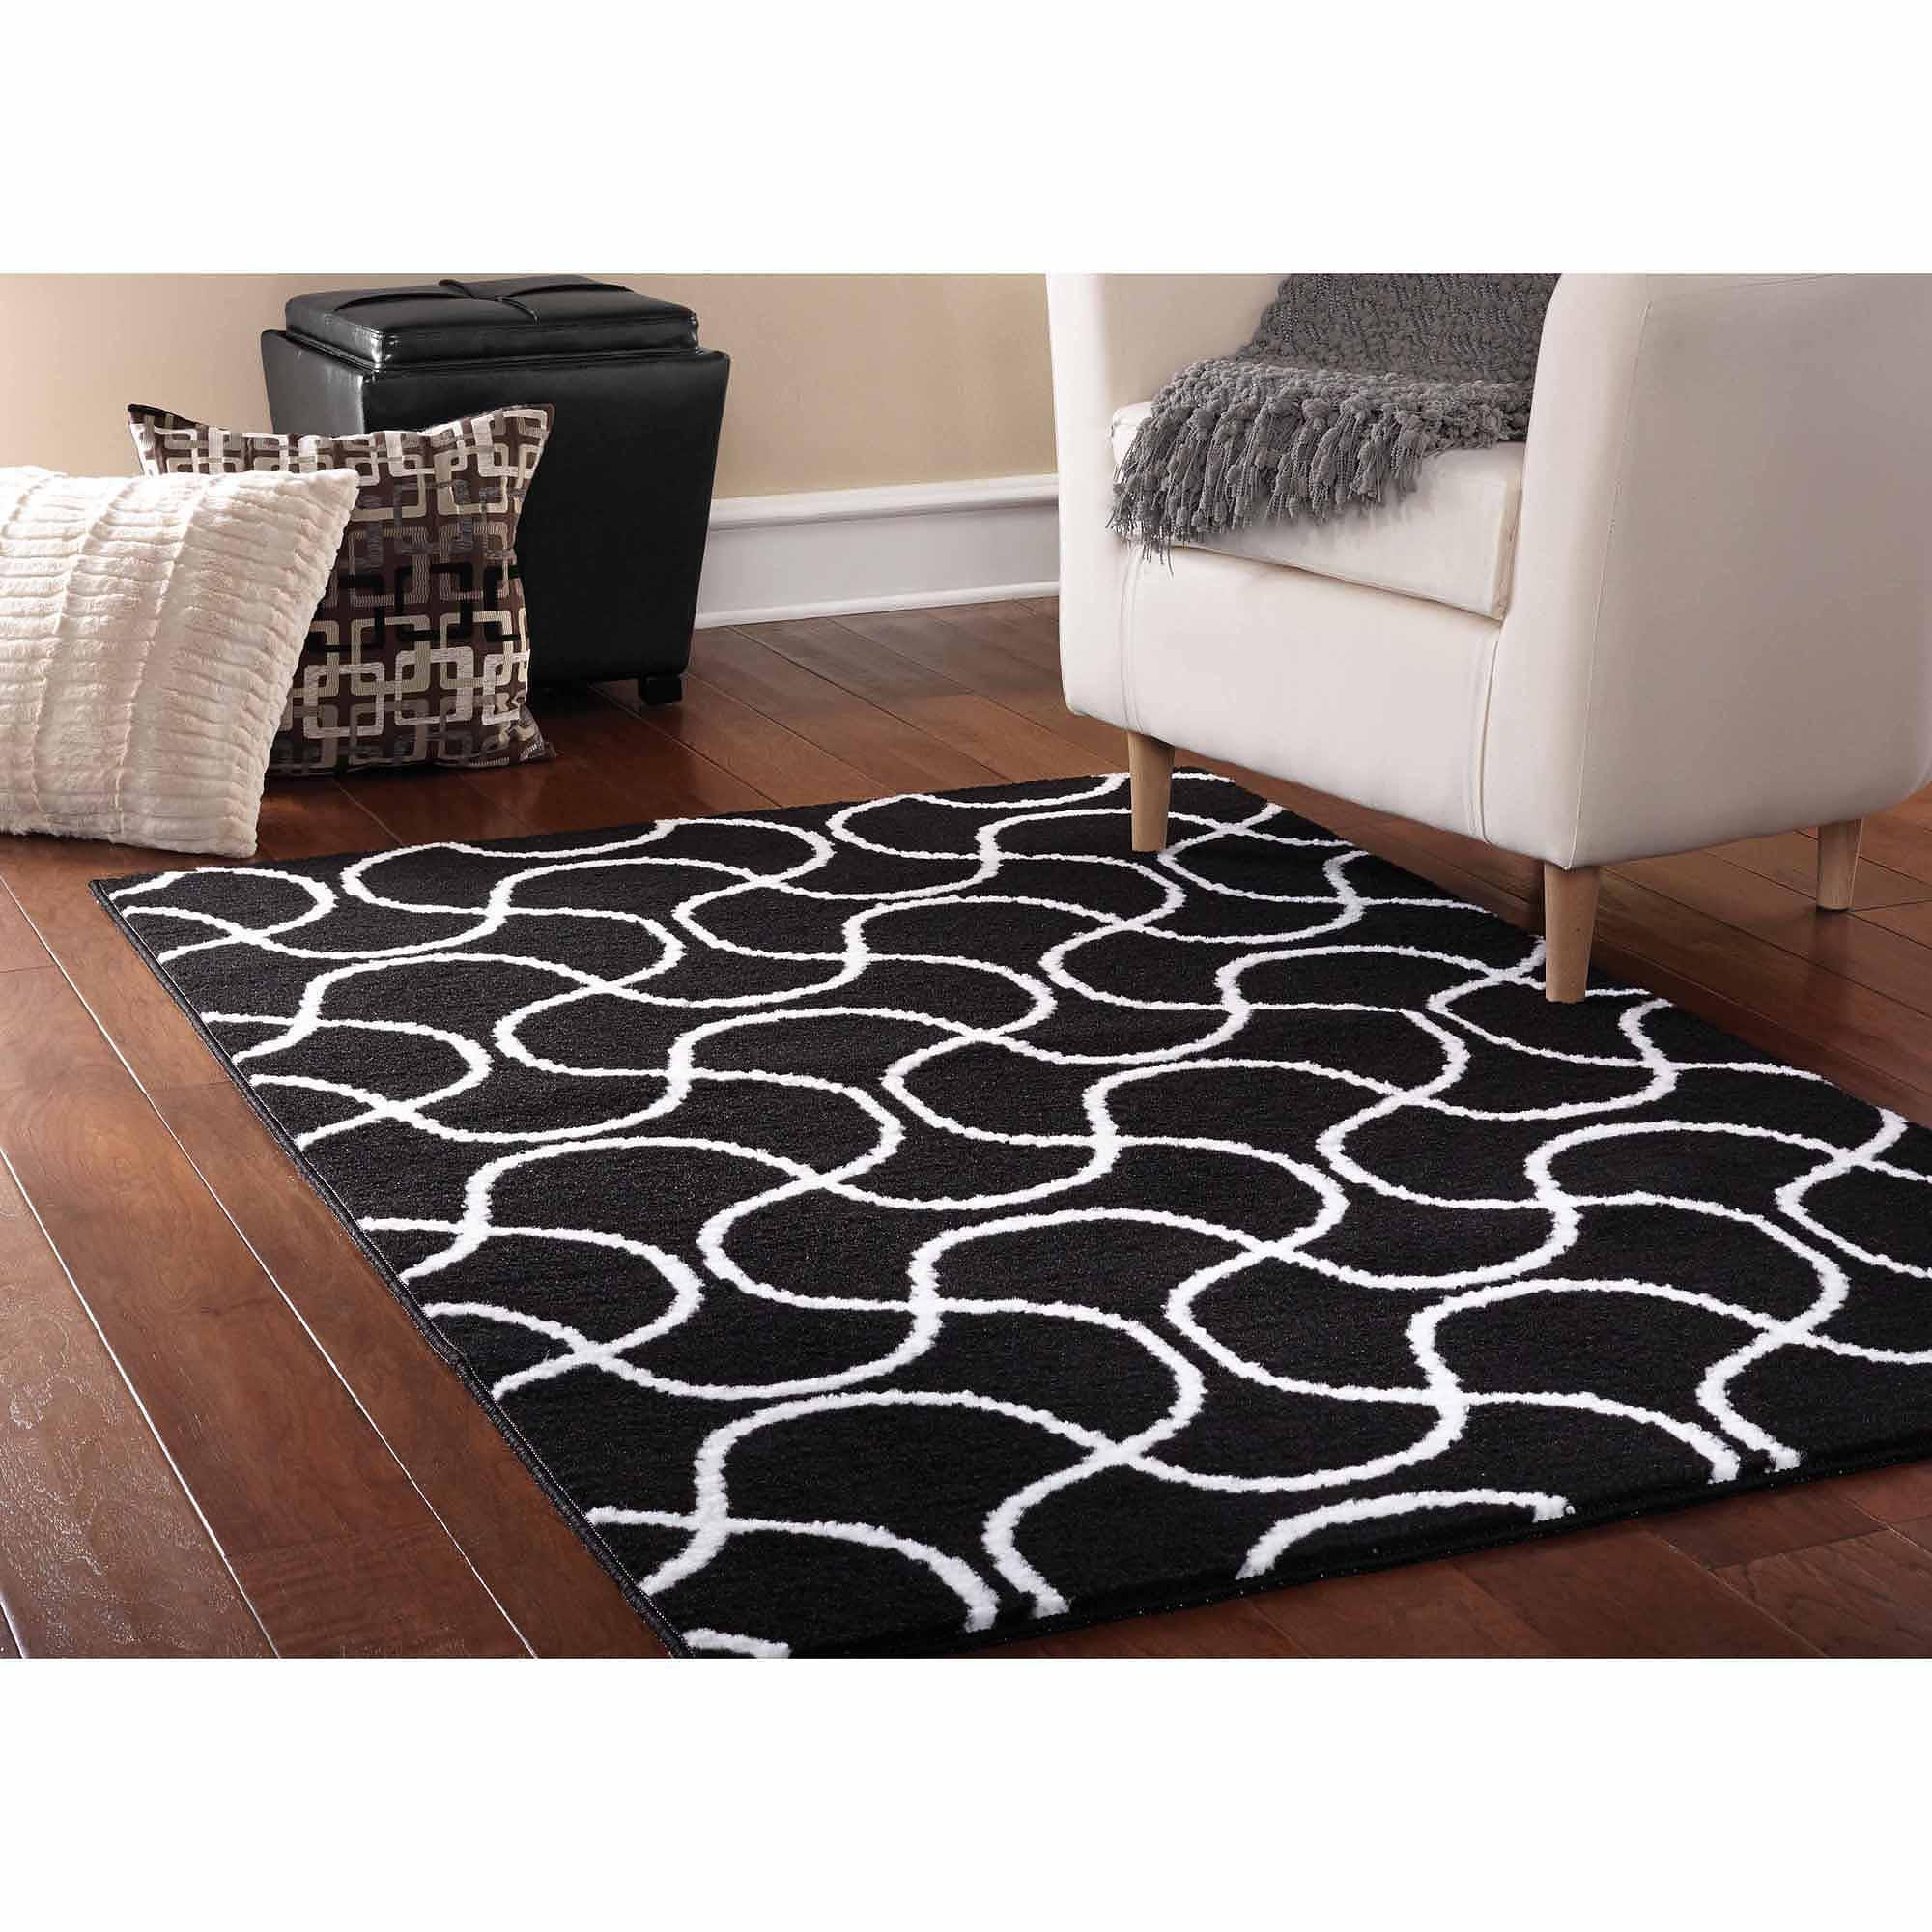 Black and white bedding walmart - Black And White Bedding Walmart 49